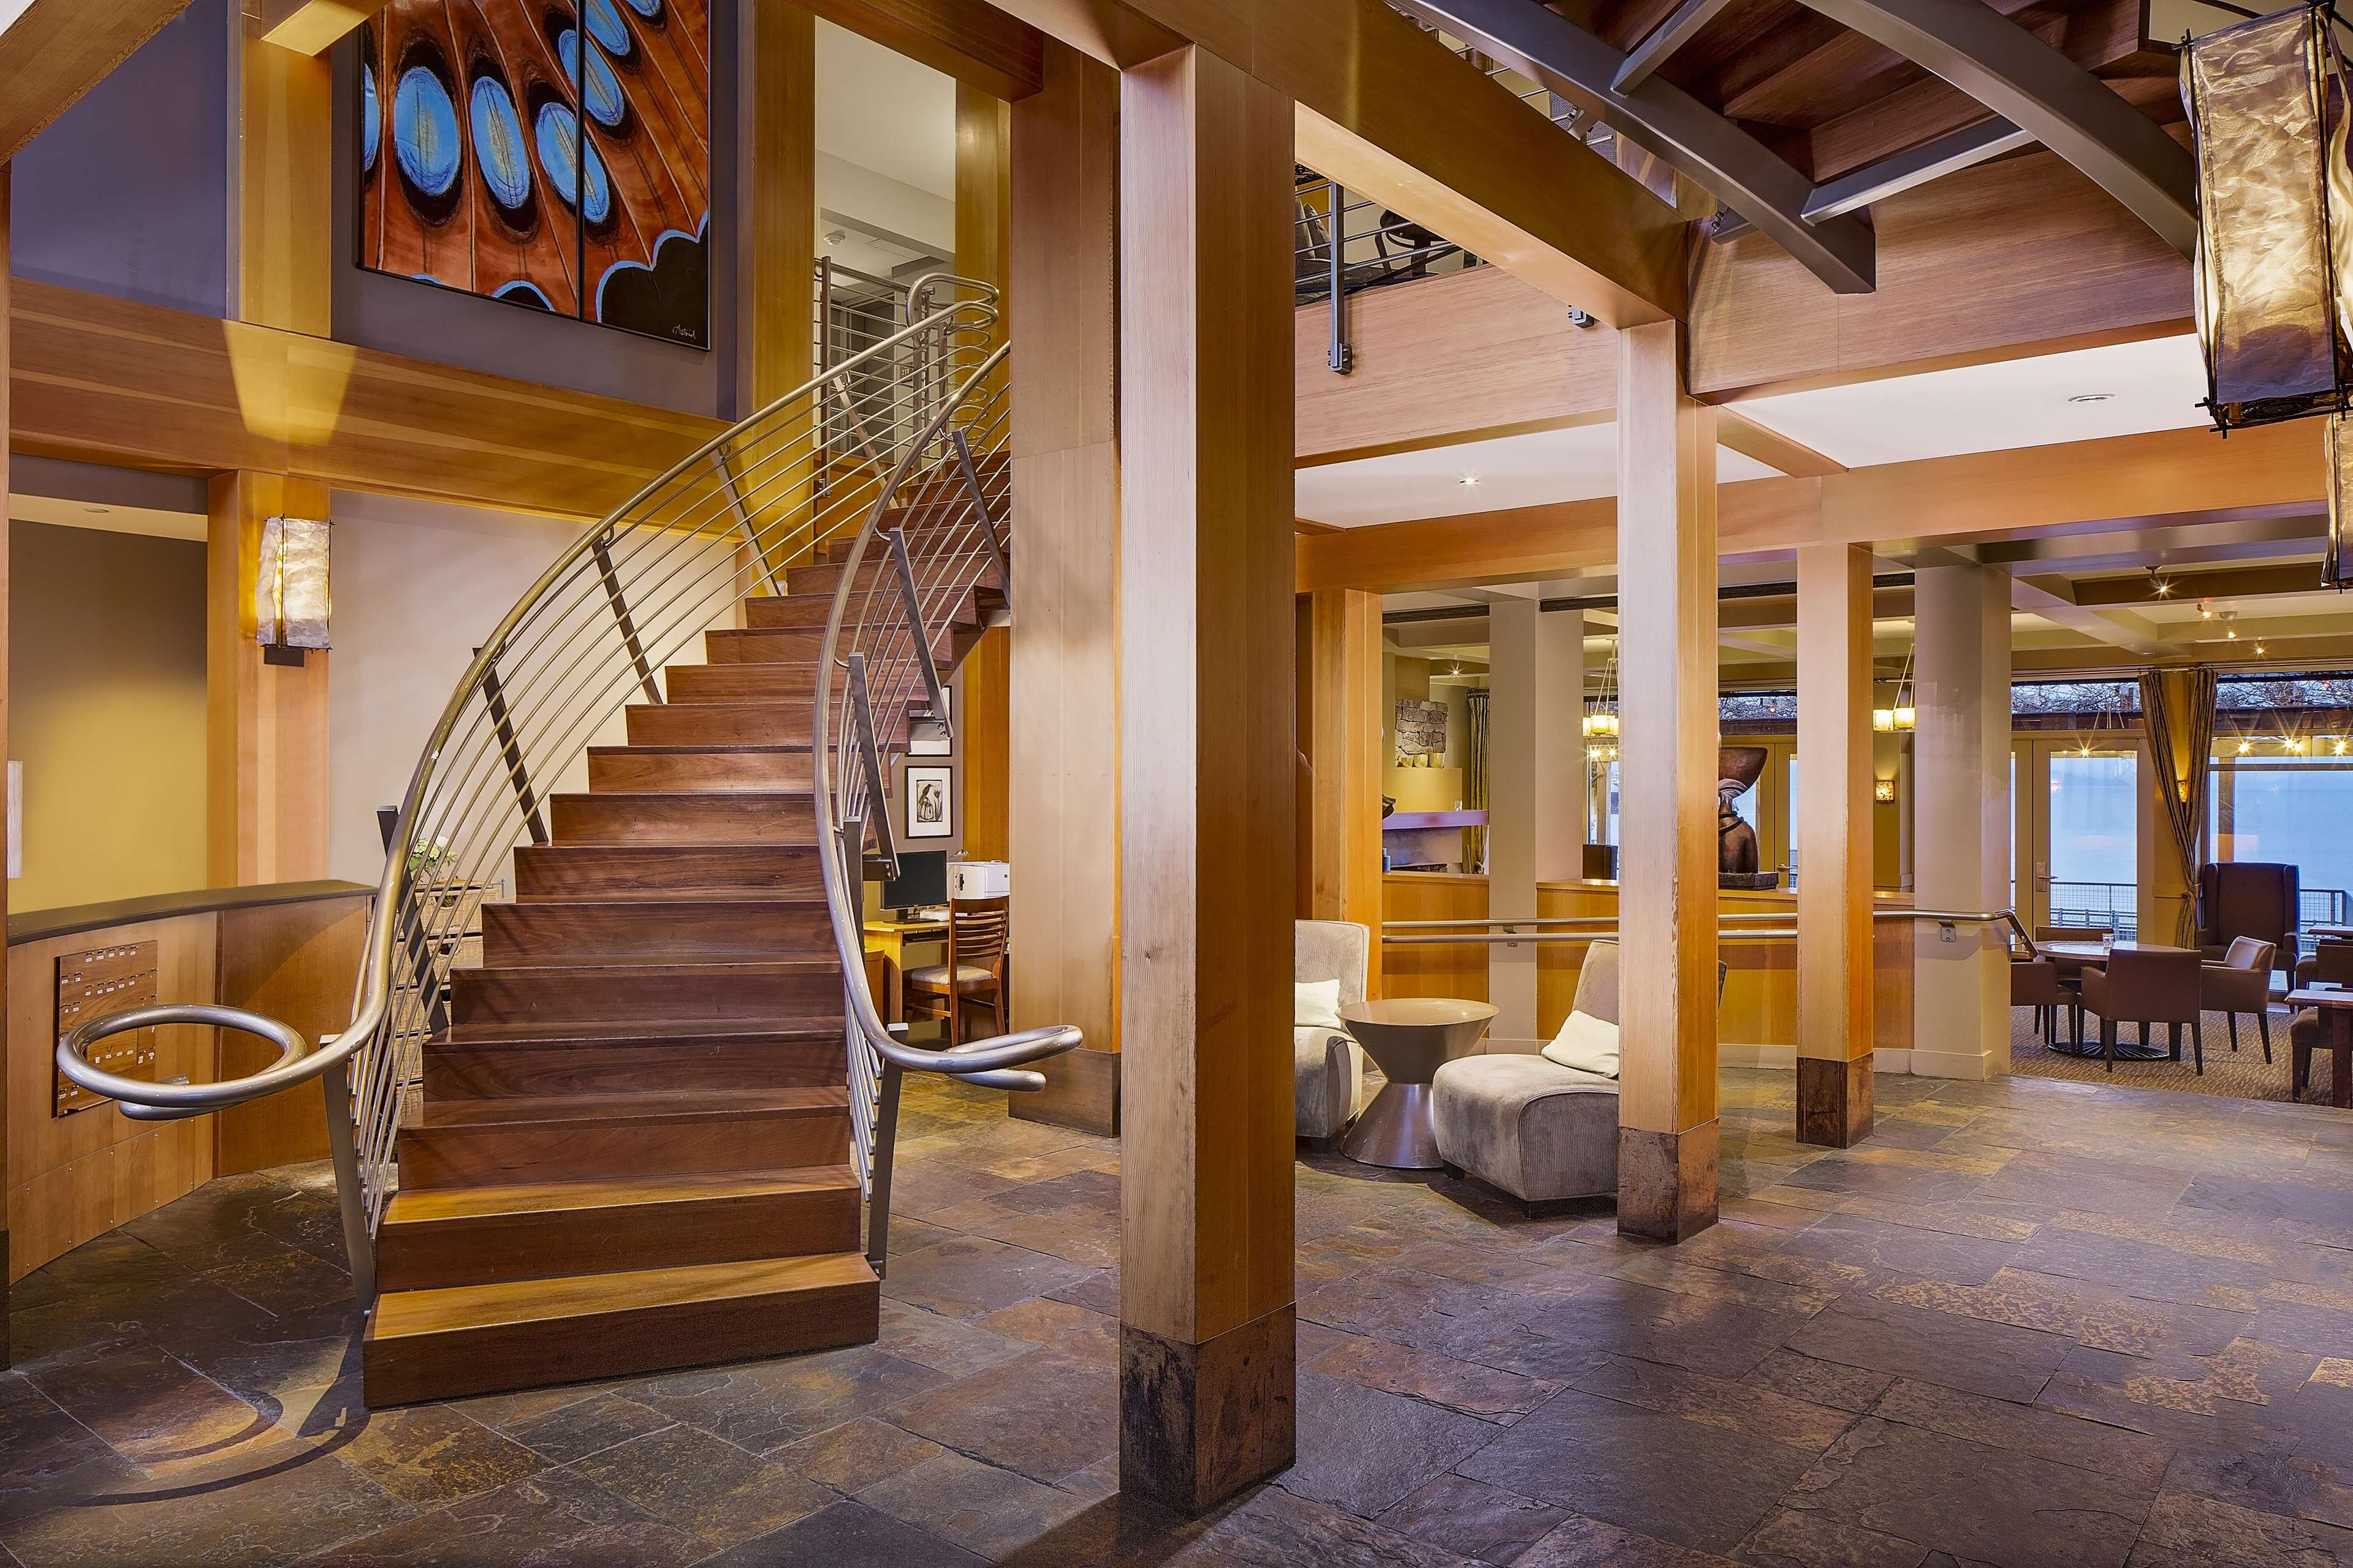 The Chrysalis Inn & Spa Bellingham, Curio Collection by Hilton image 2